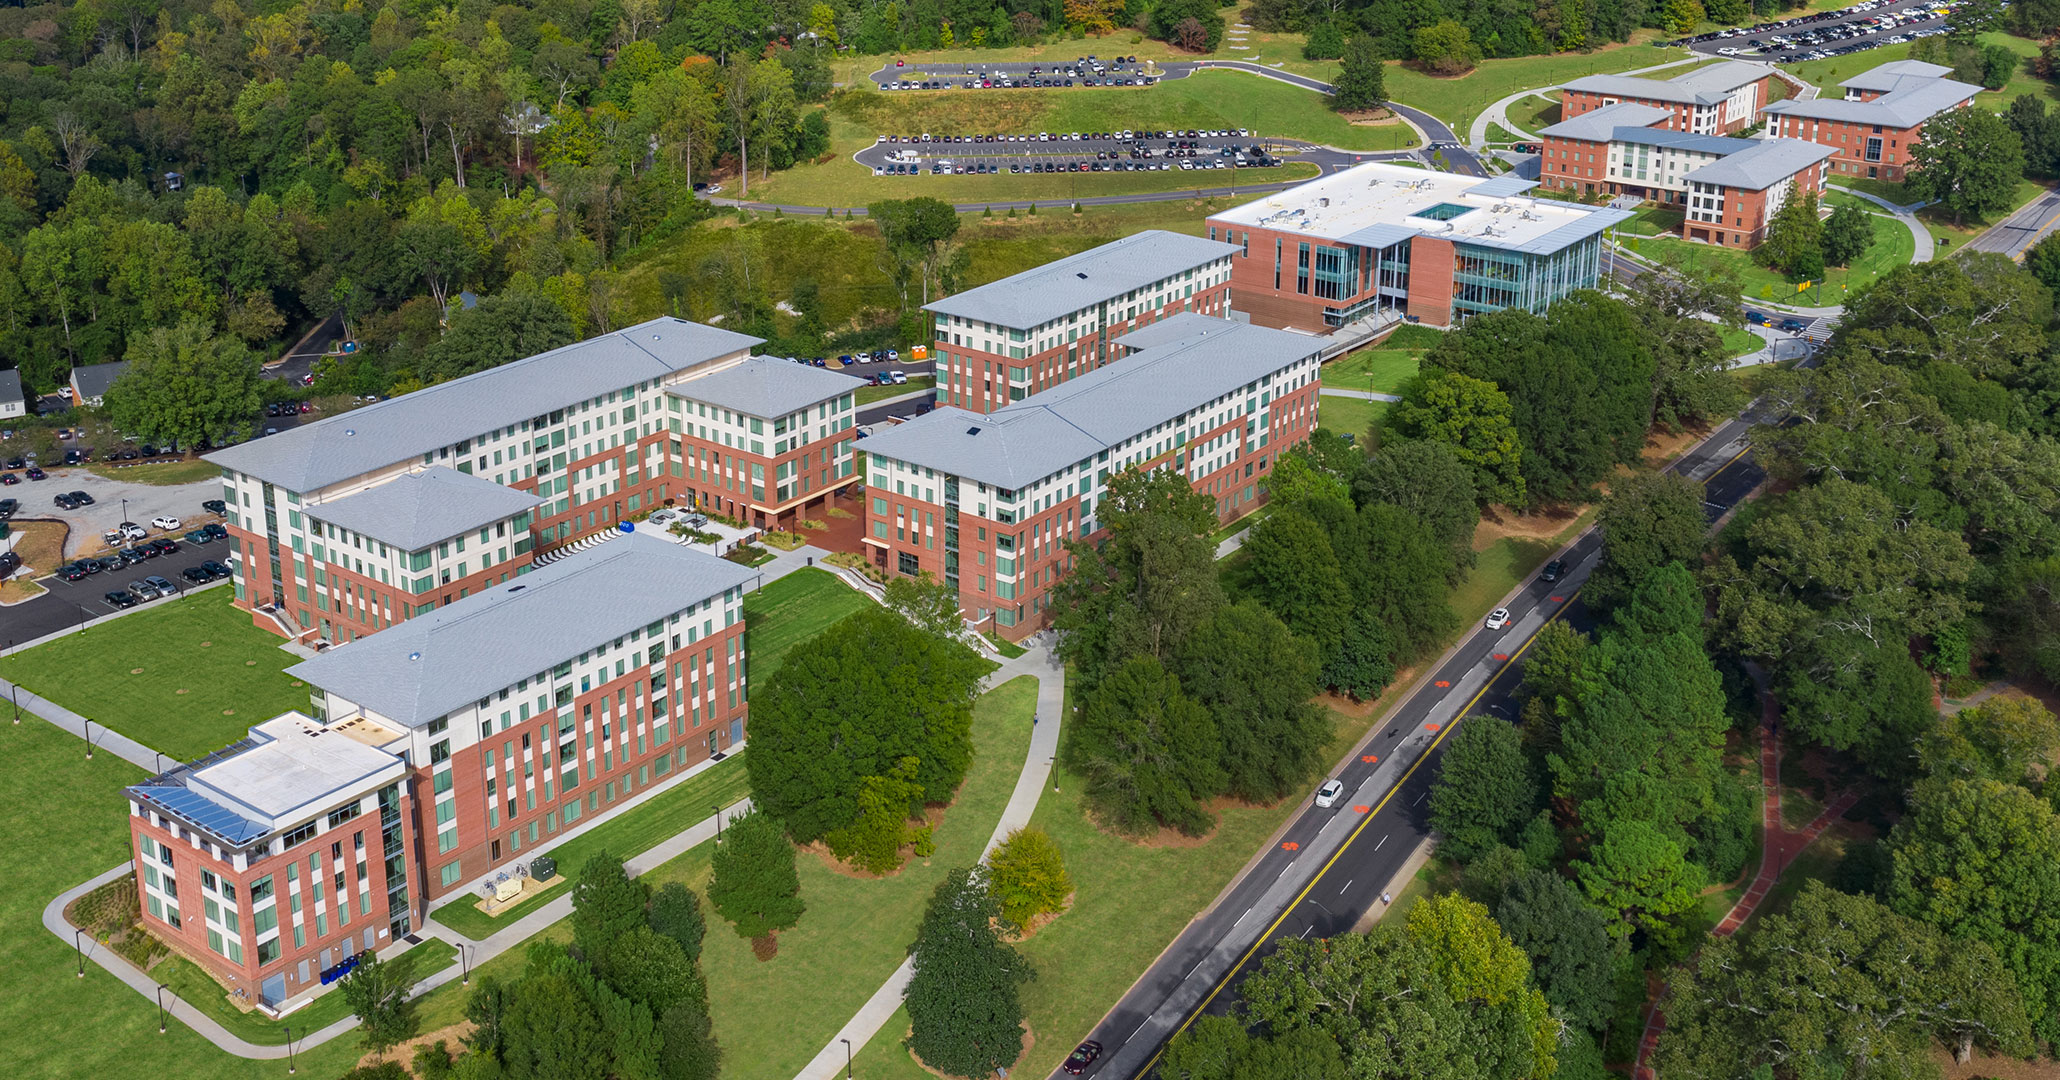 Boudreaux architects worked with Clemson University to incorporate Douthit Hills Student Hub into the campus landscape.